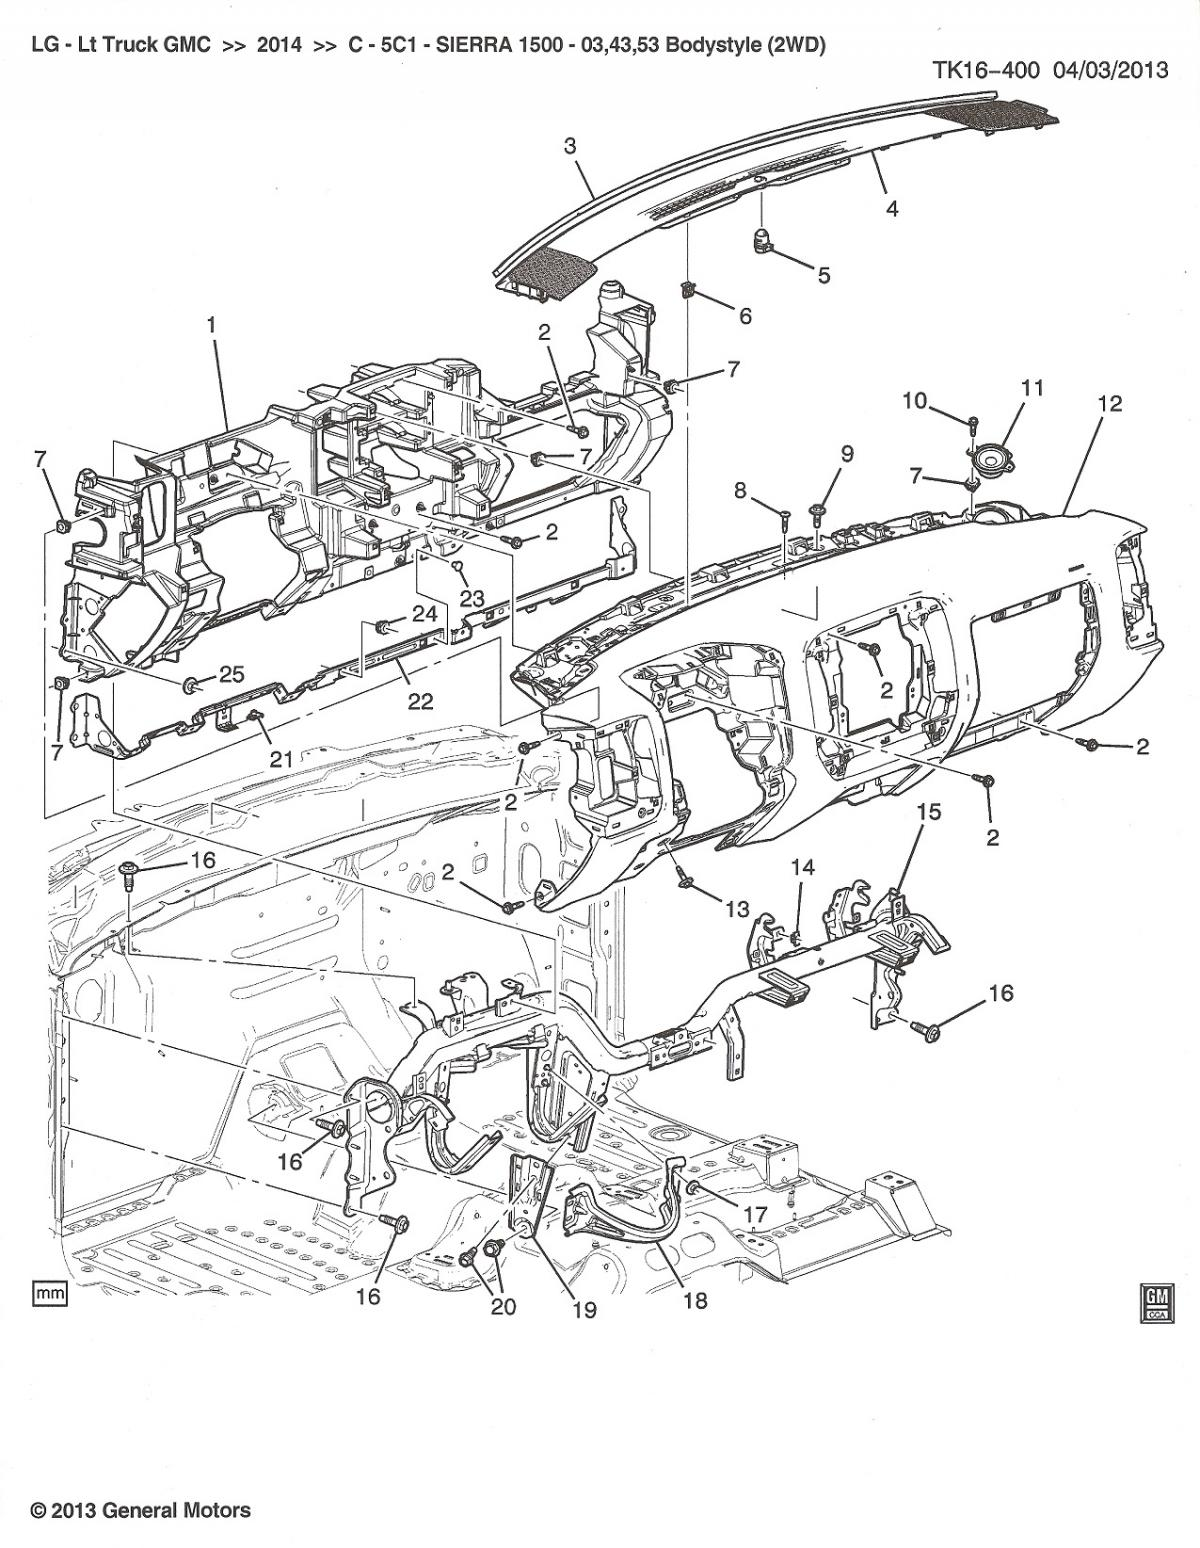 Diagram Chevy Silverado Parts Diagram Full Version